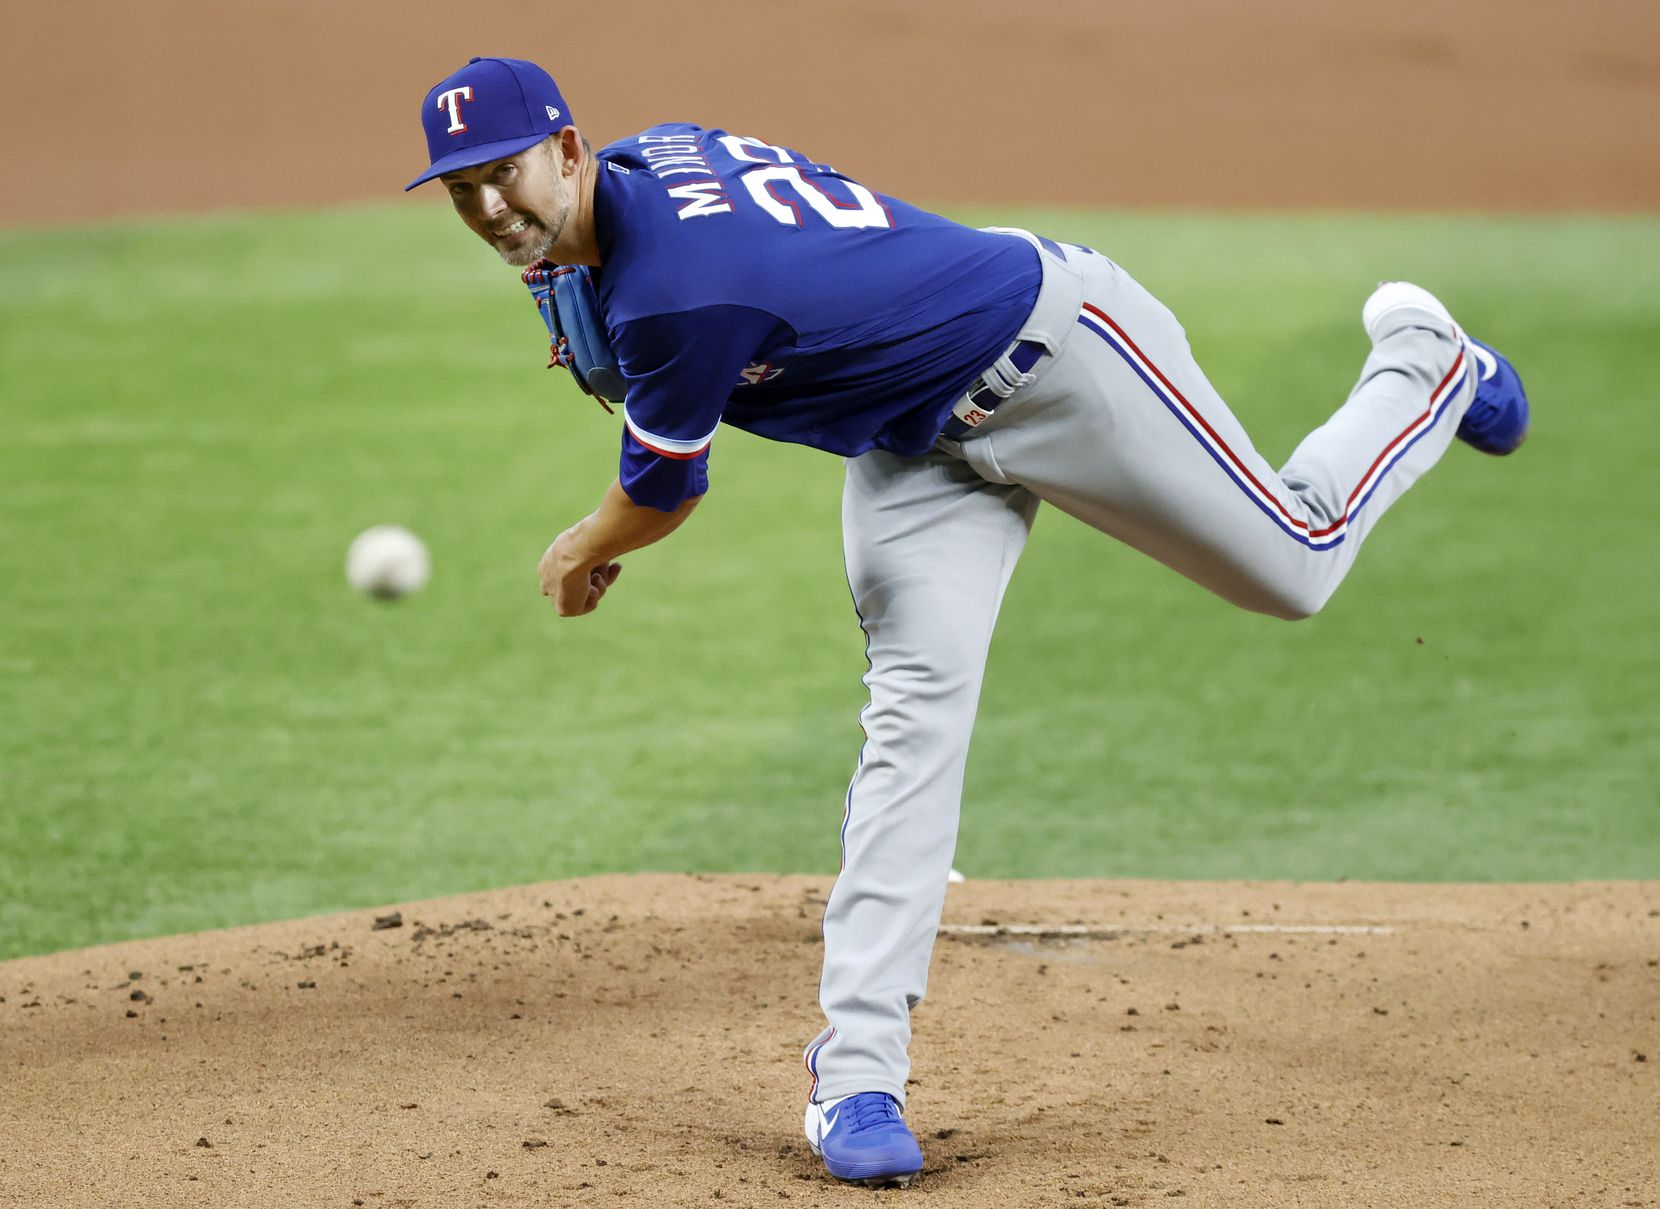 Texas Rangers starting pitcher Mike Minor throws from the mound during a simulated Summer Camp game inside Globe Life Field in Arlington, Texas, Thursday, July 9, 2020. (Tom Fox/The Dallas Morning News)